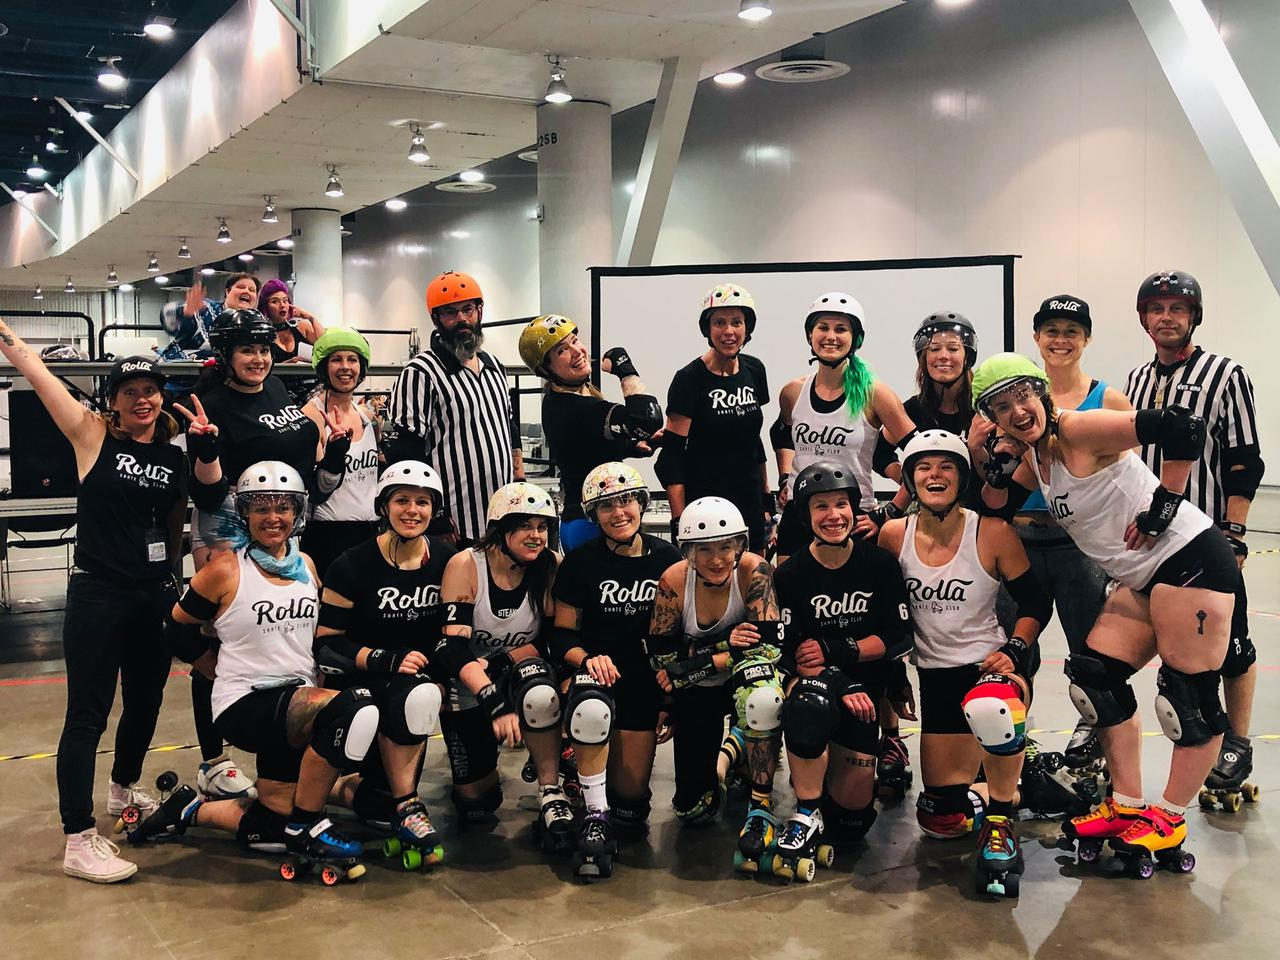 "Team photo of the RollaCon 2019 ""All Stars"" bout roster, and officials. Two rows, front row on one knee. In the background, two people are waving at the camera."